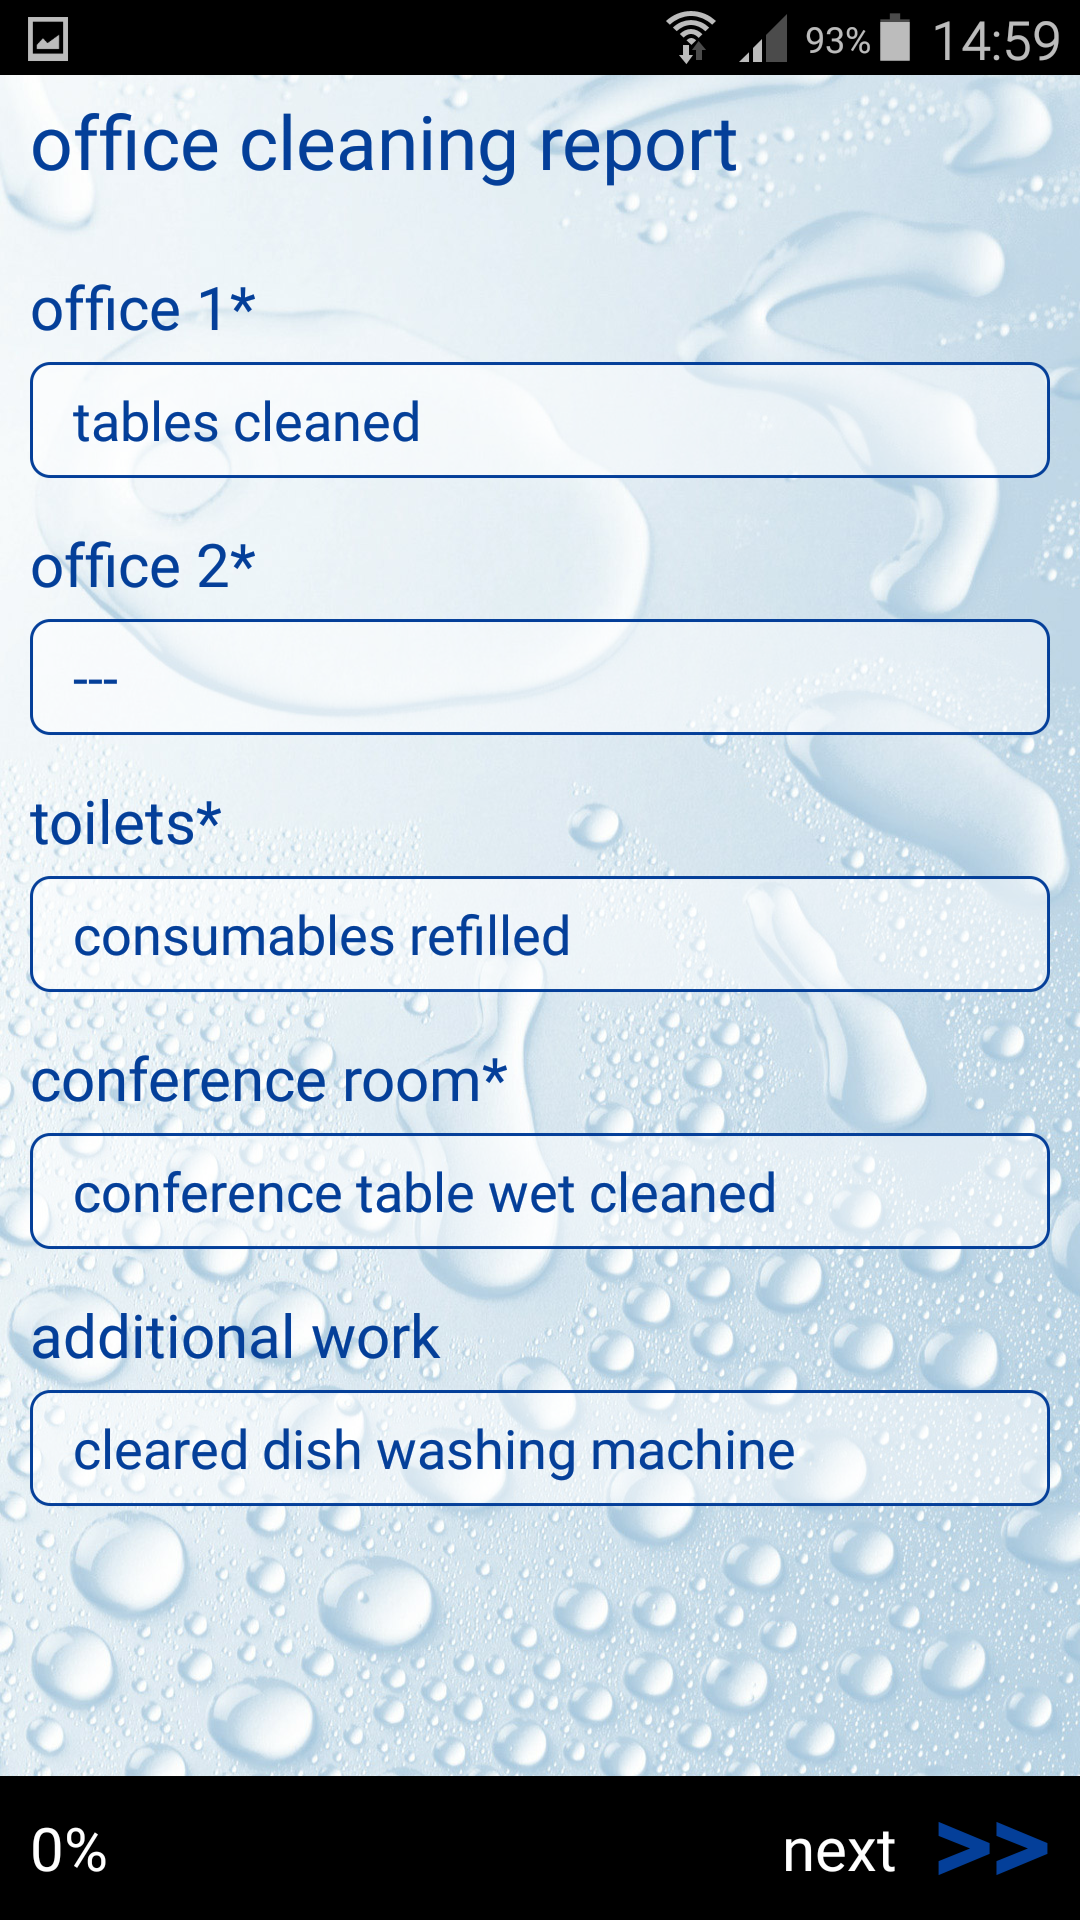 ginstr_app_officeCleaningReport_EN_3